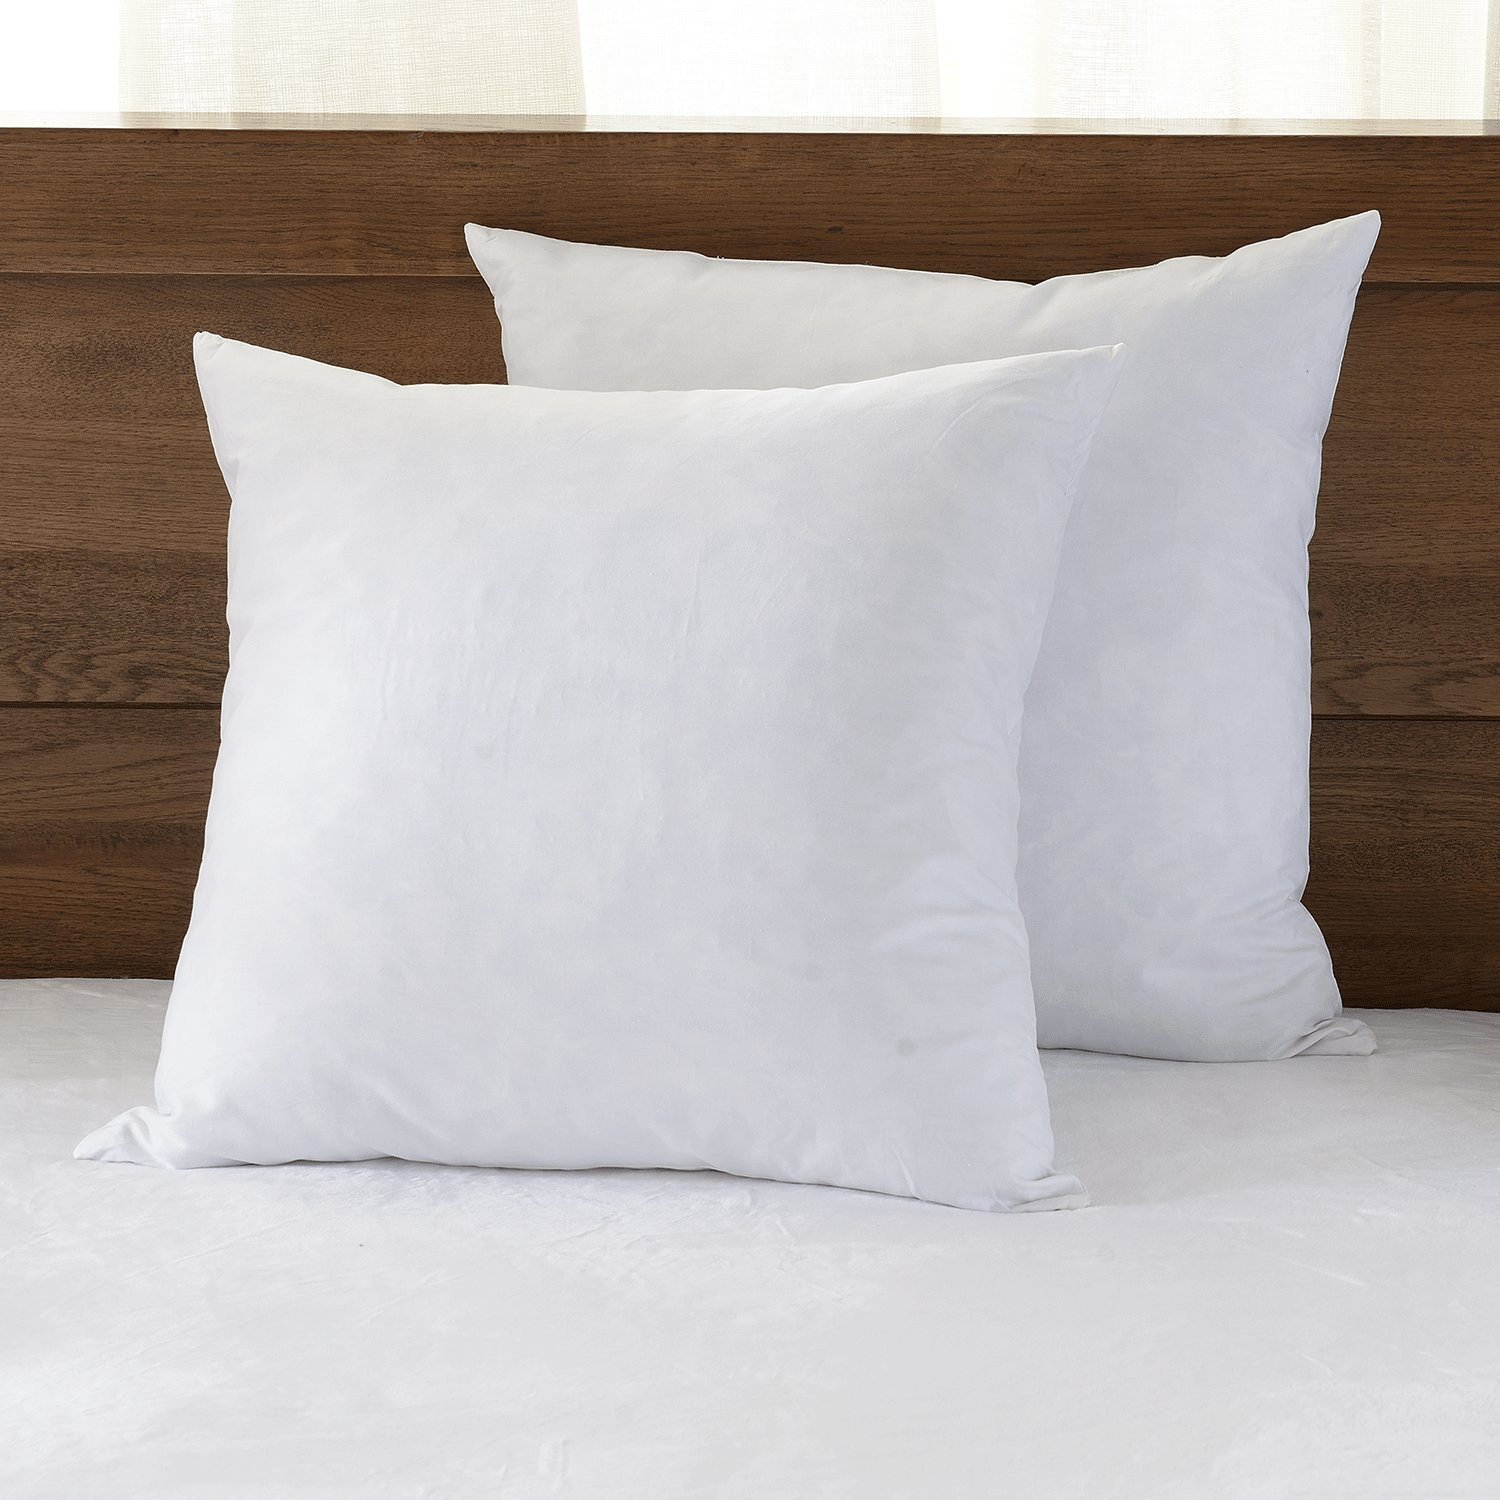 Basic Beyond Decorative Pillow Insert (2 Pack) - Hypoallergenic 100% Cotton Fabric Square 20 x 20 Soft and Bed Pillow Form Inserts